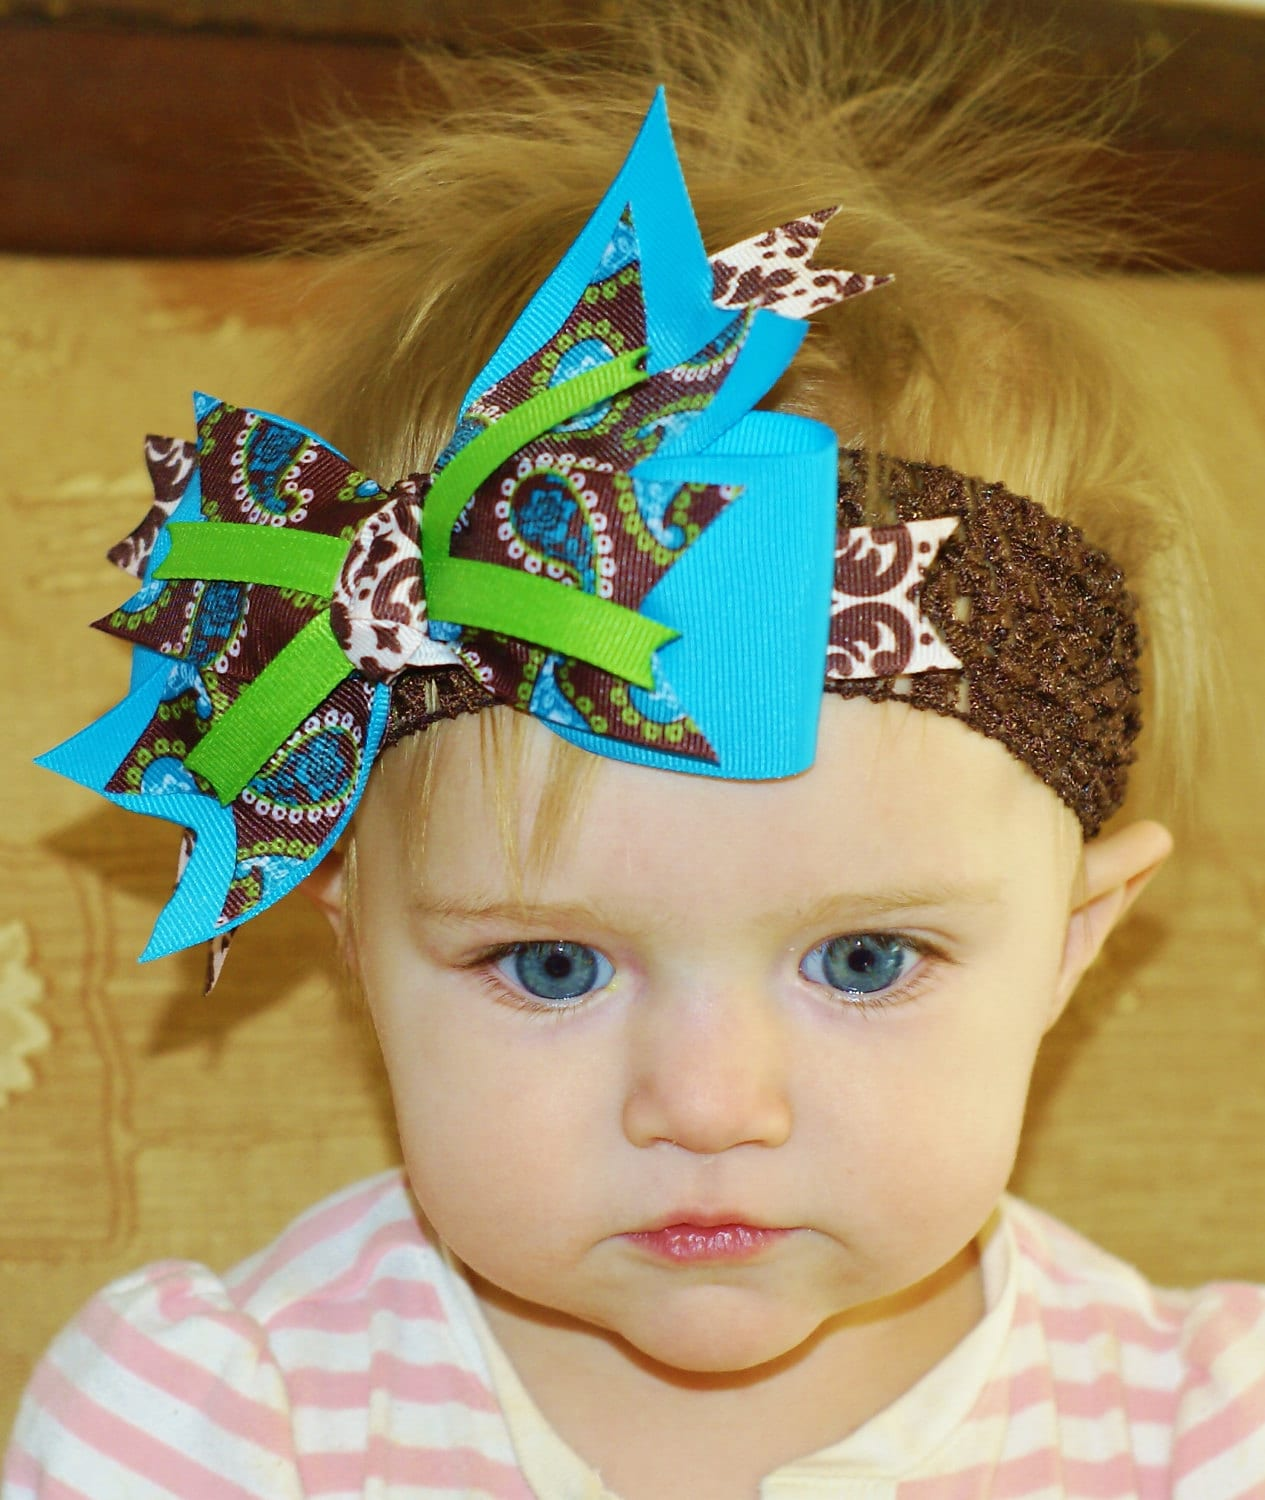 Baby headbands and girls hair bows just got a lot classier with our upscale styling and distinct quality craftsmanship. Our products are hand assembled in the USA with top quality materials that are rarely seen with ordinary crafters, hobbiests, or local businesses - who often buy premade from China or .